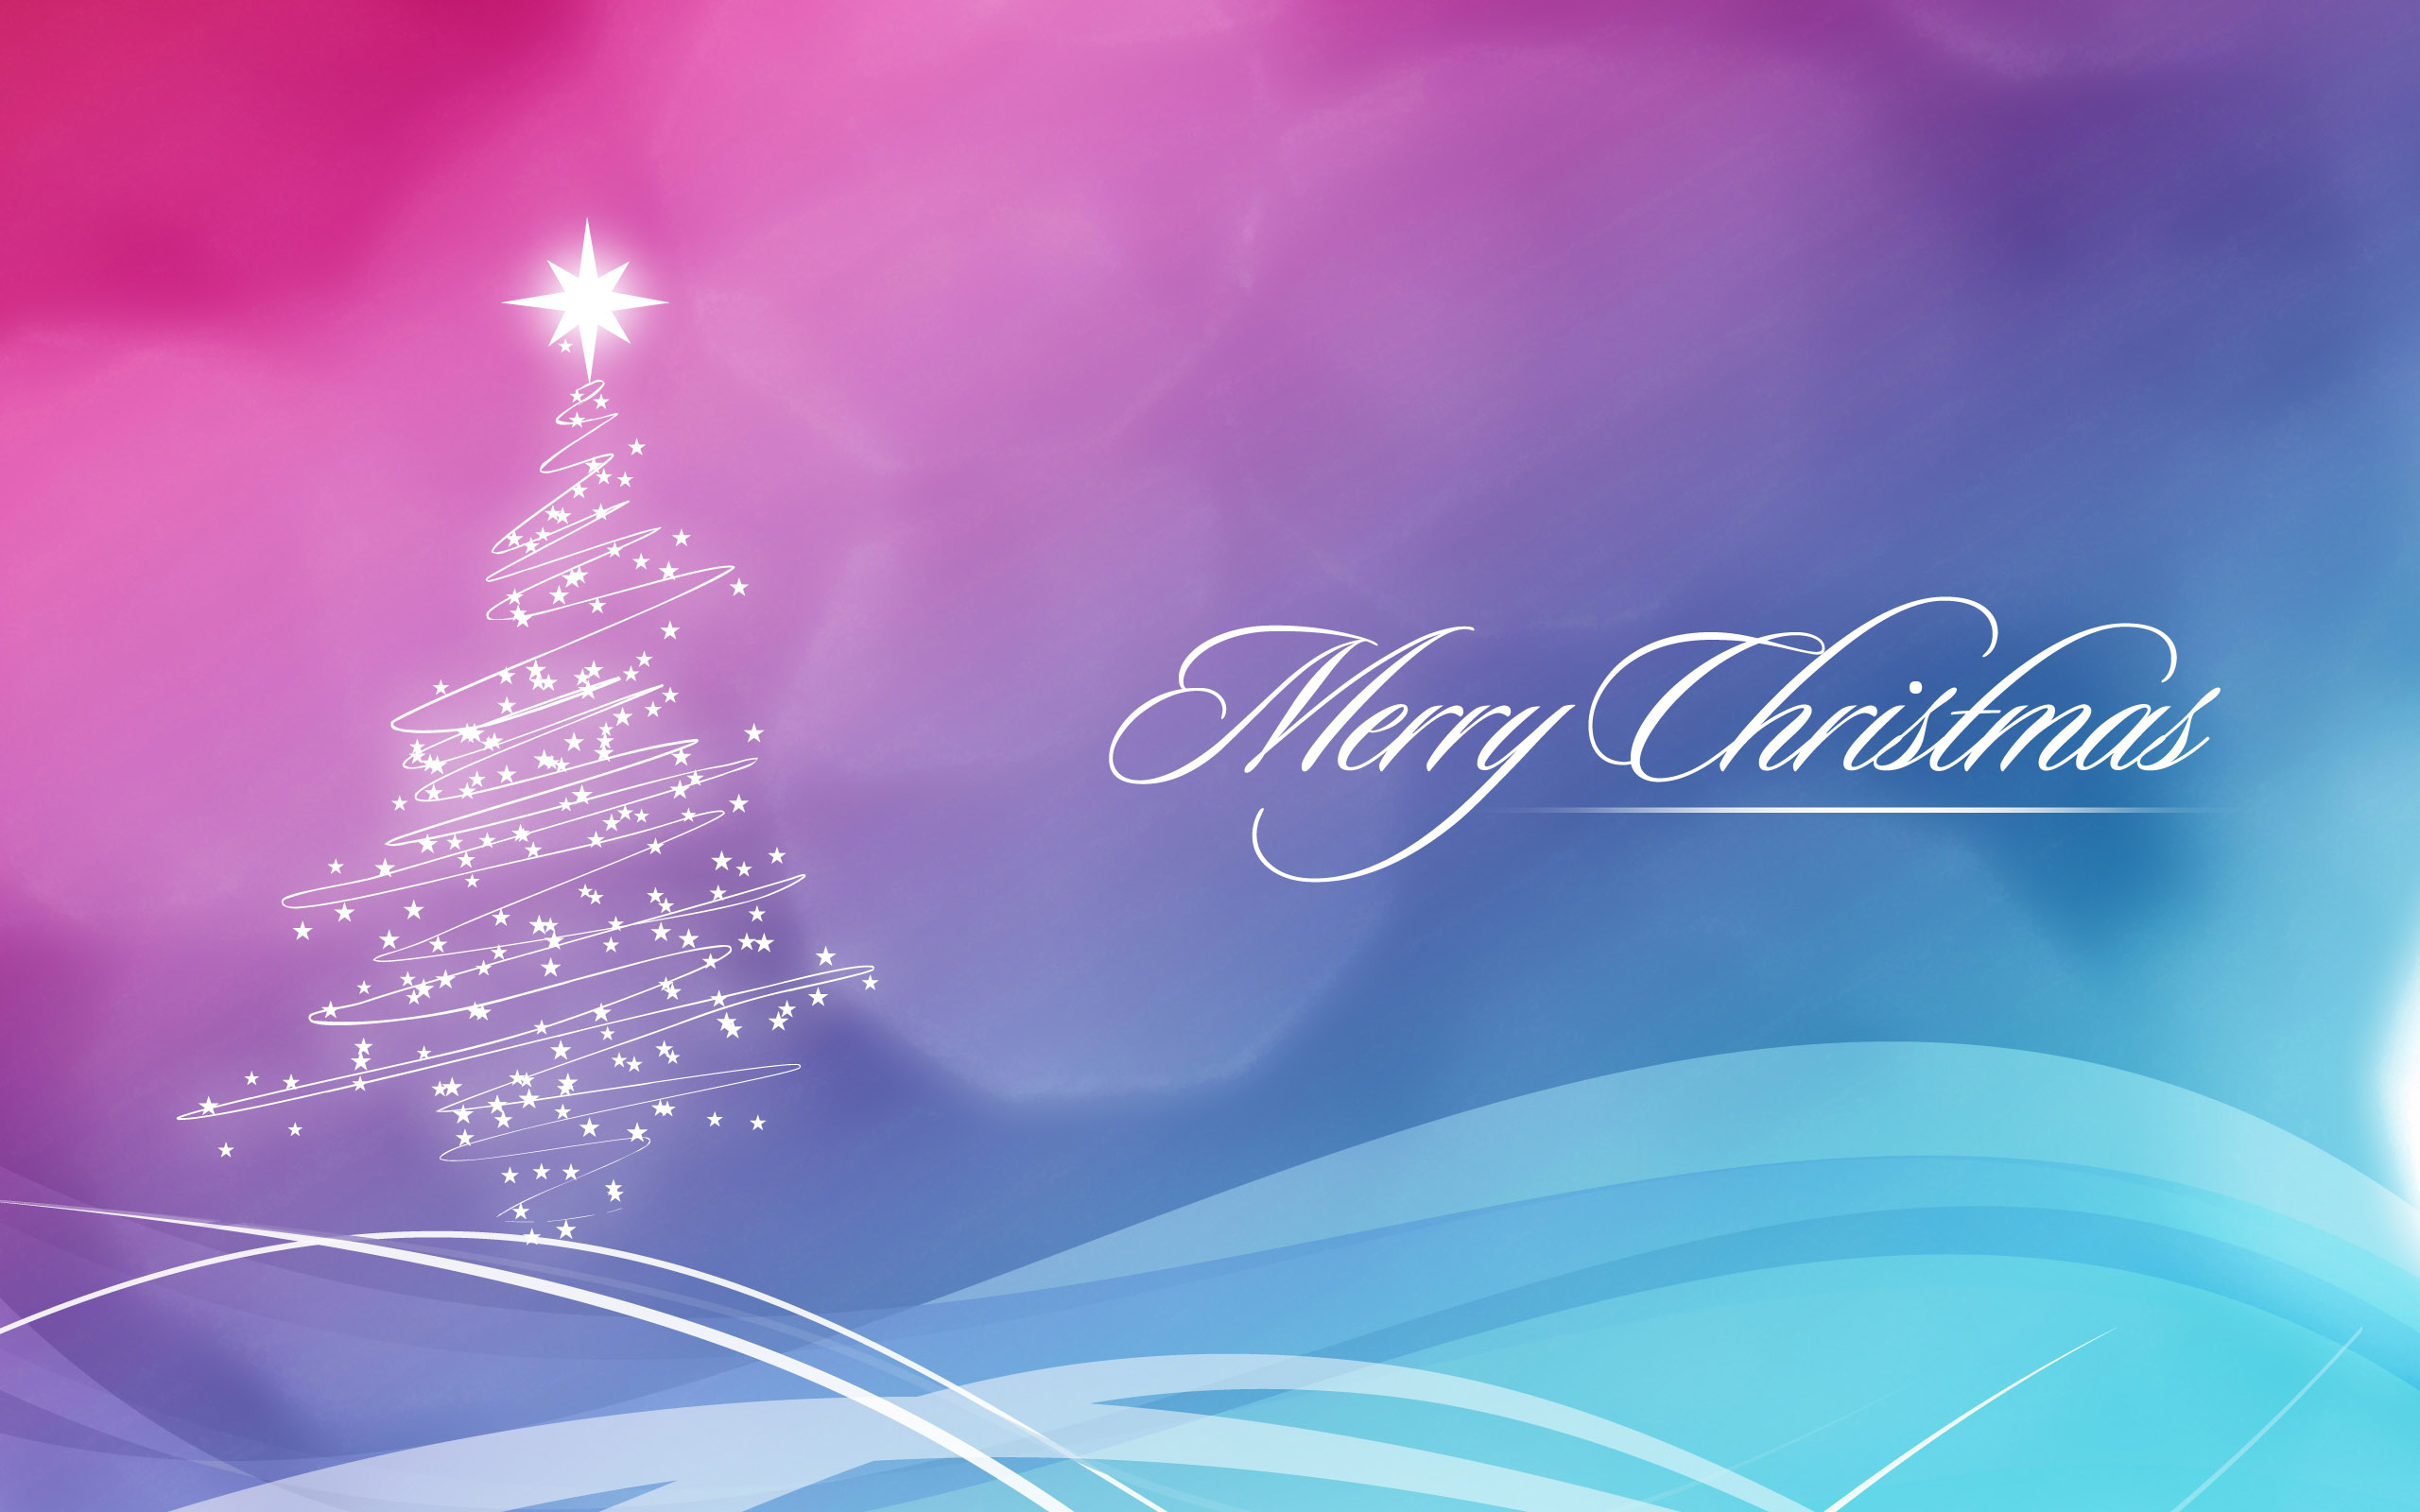 40 Christmas Wallpapers HD Quality 2012 Collection 2560x1600